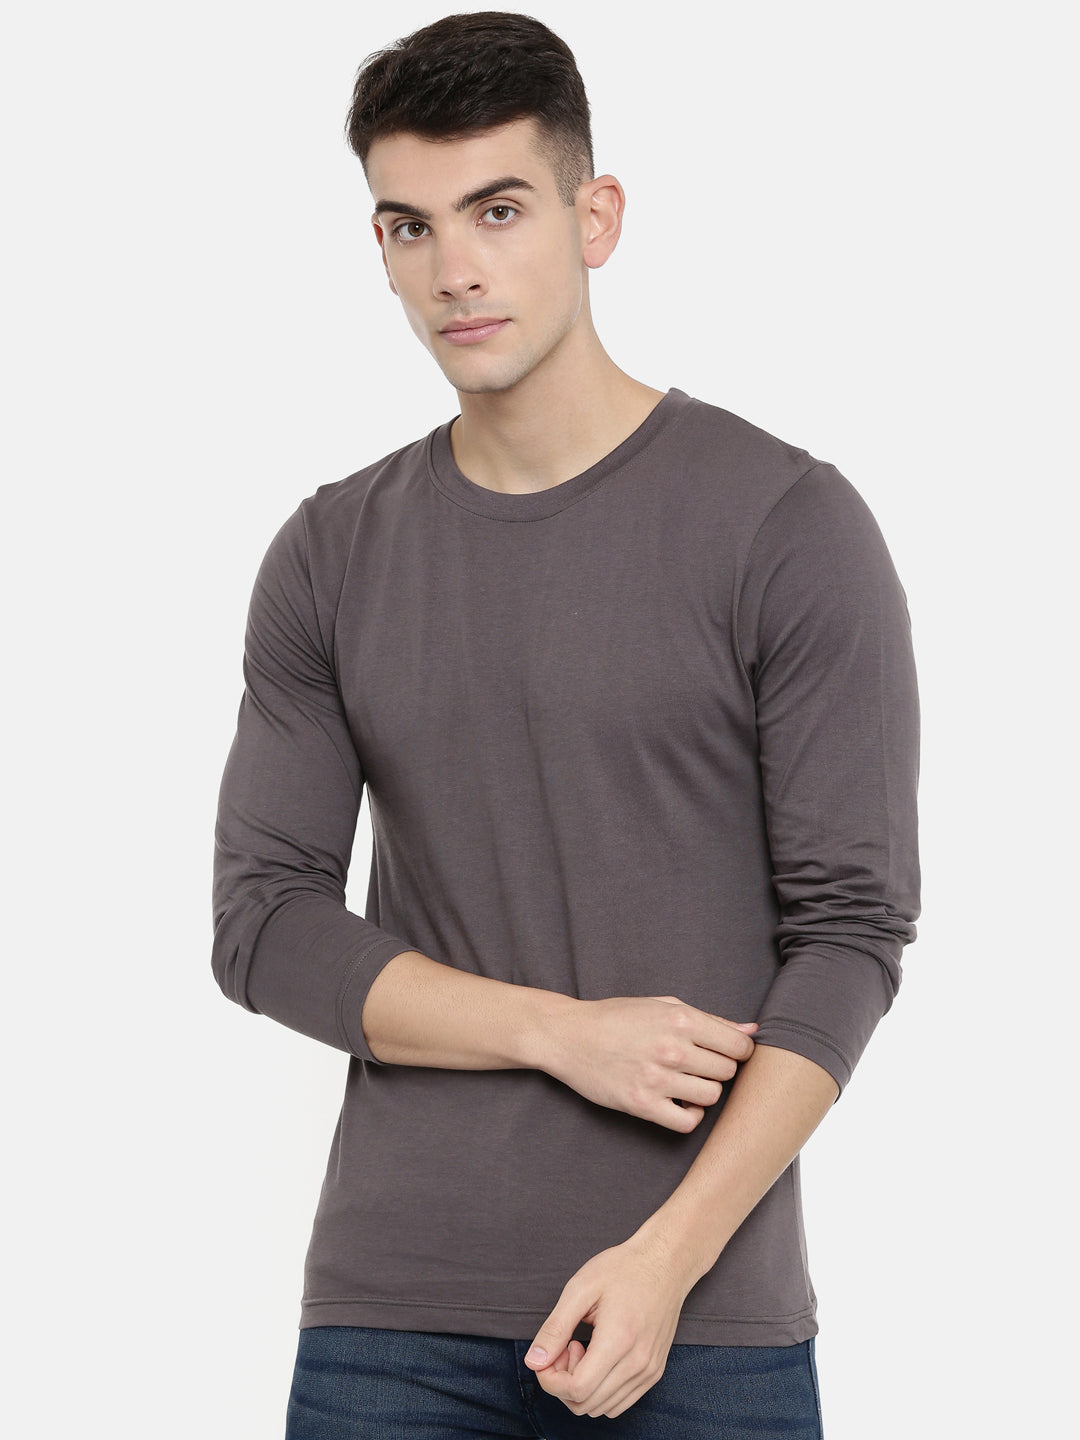 Grey Full Sleeve T-shirt Baromin